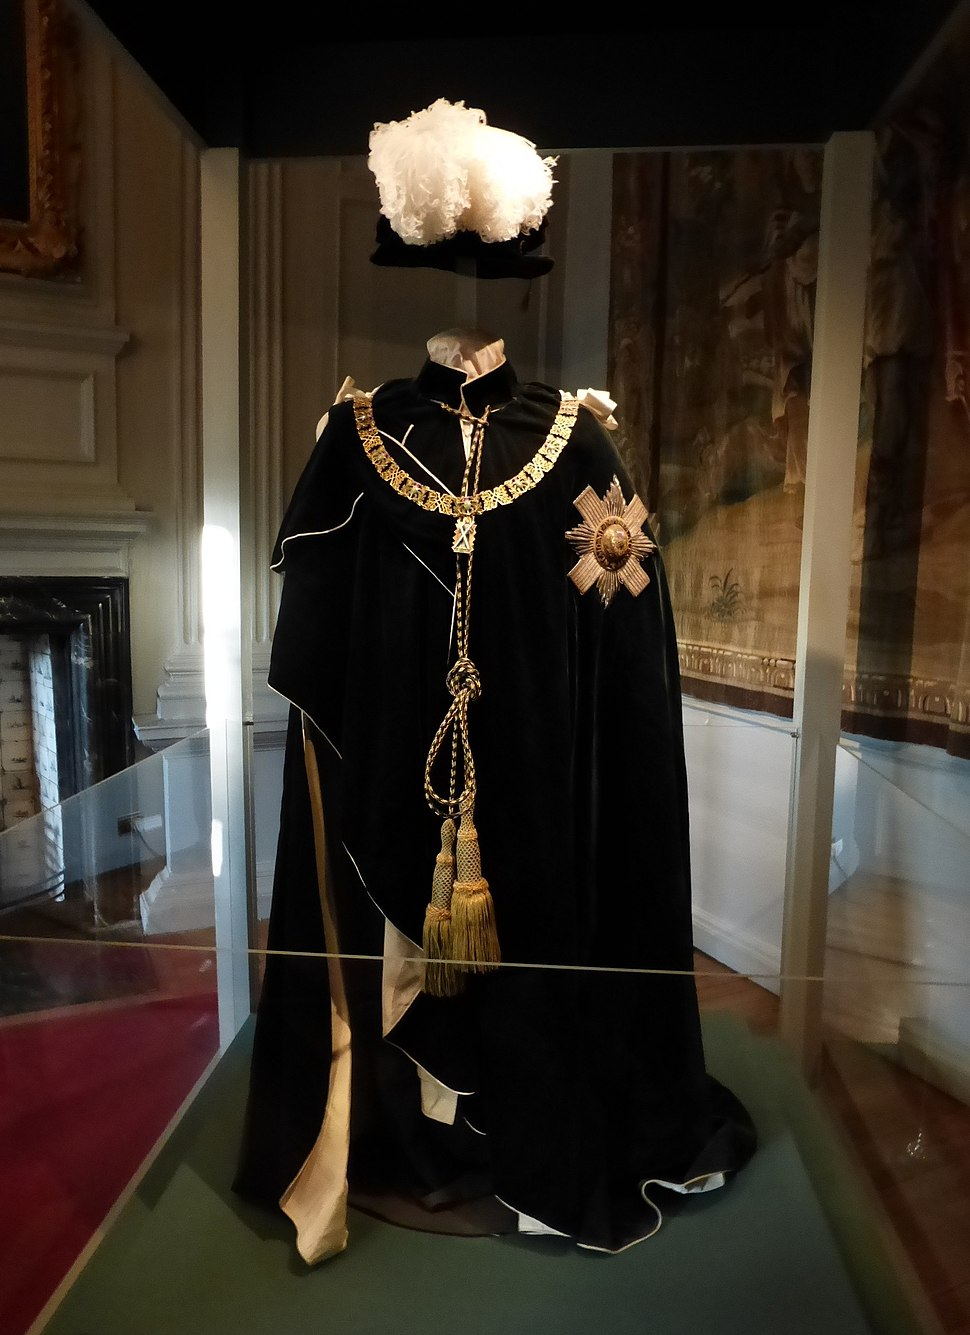 Knight of the Thistle robe, Holyrood Palace